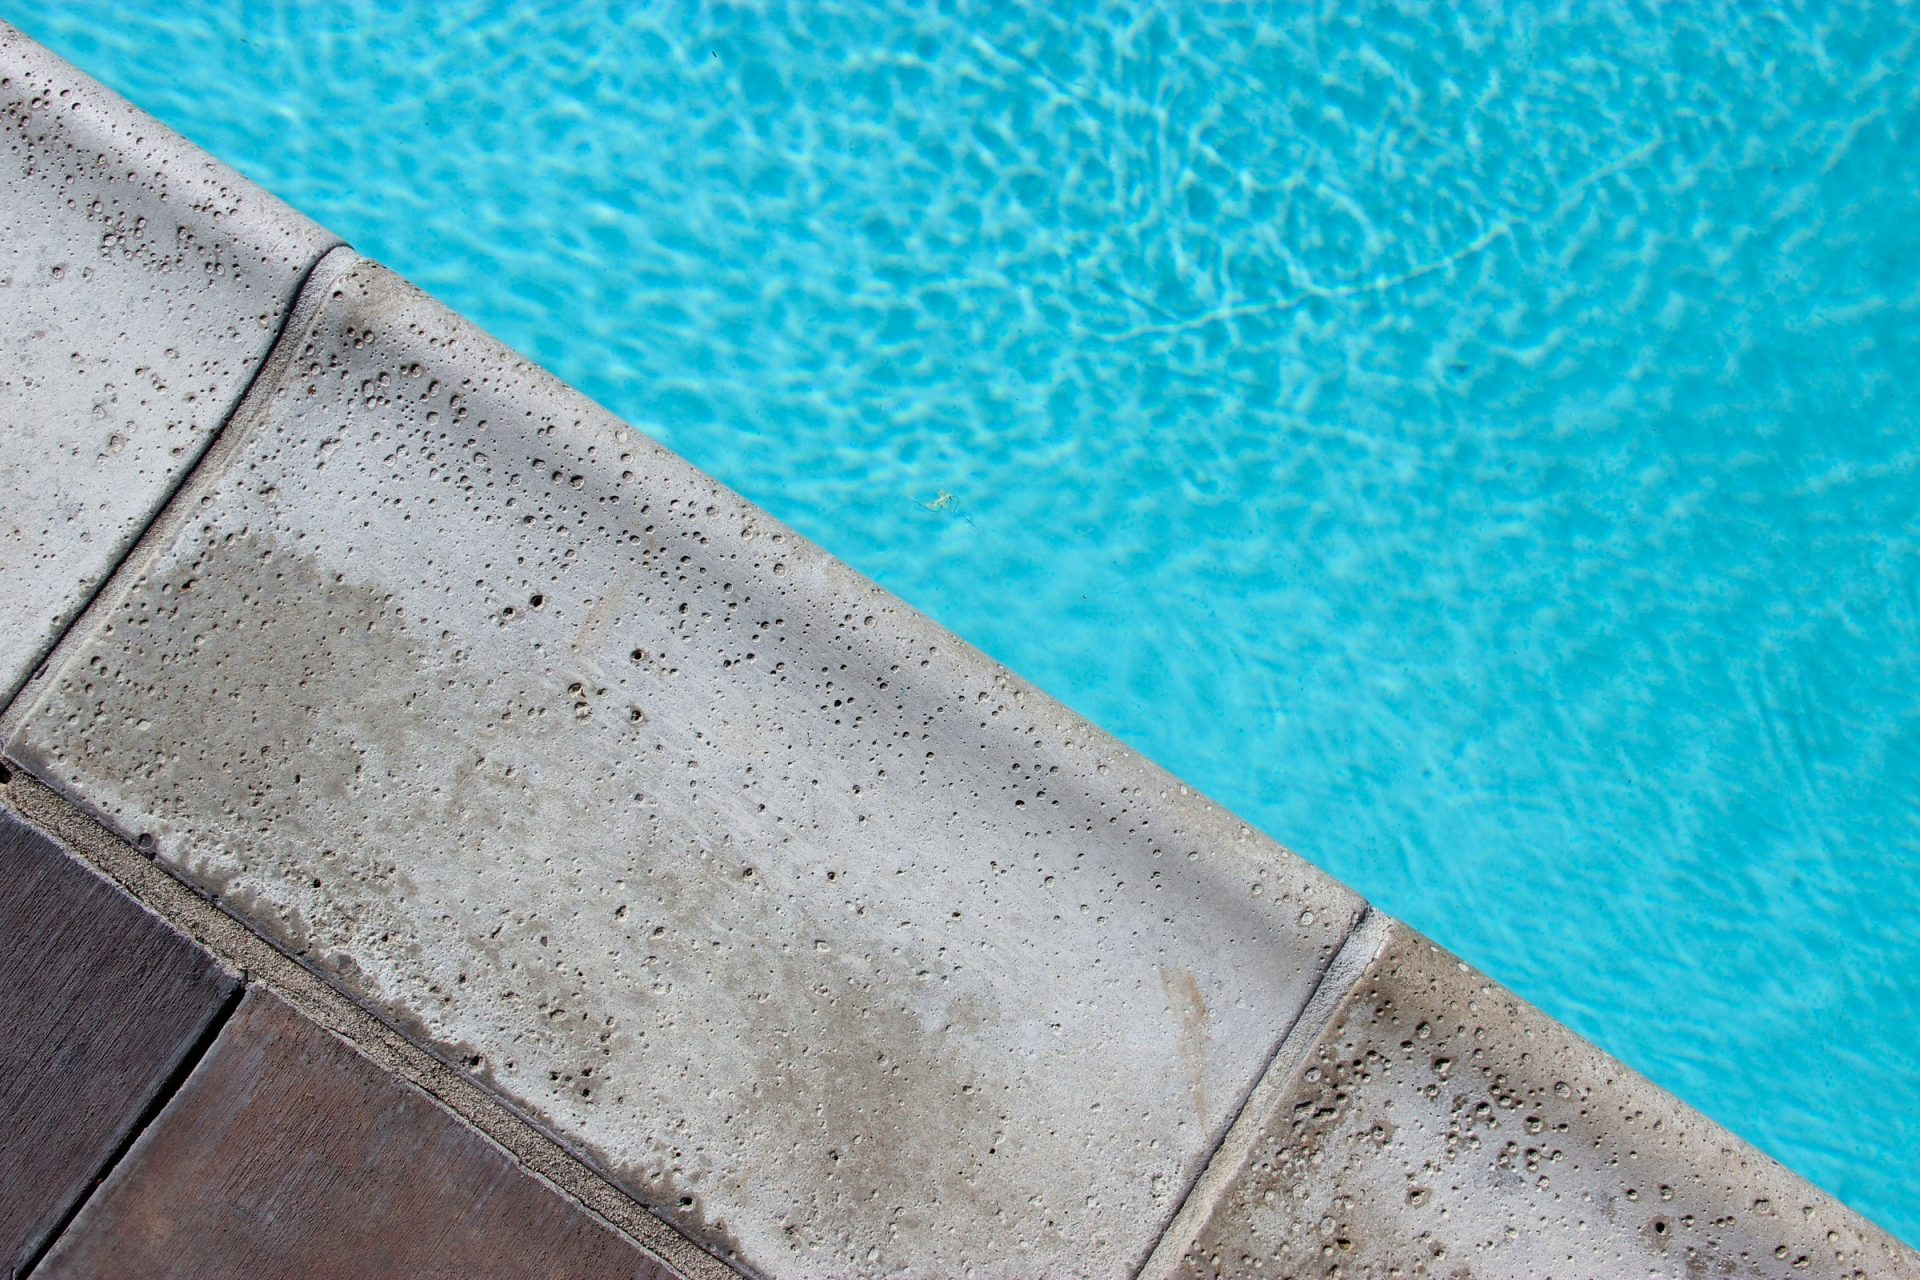 Concrete Edge Near Pool Water